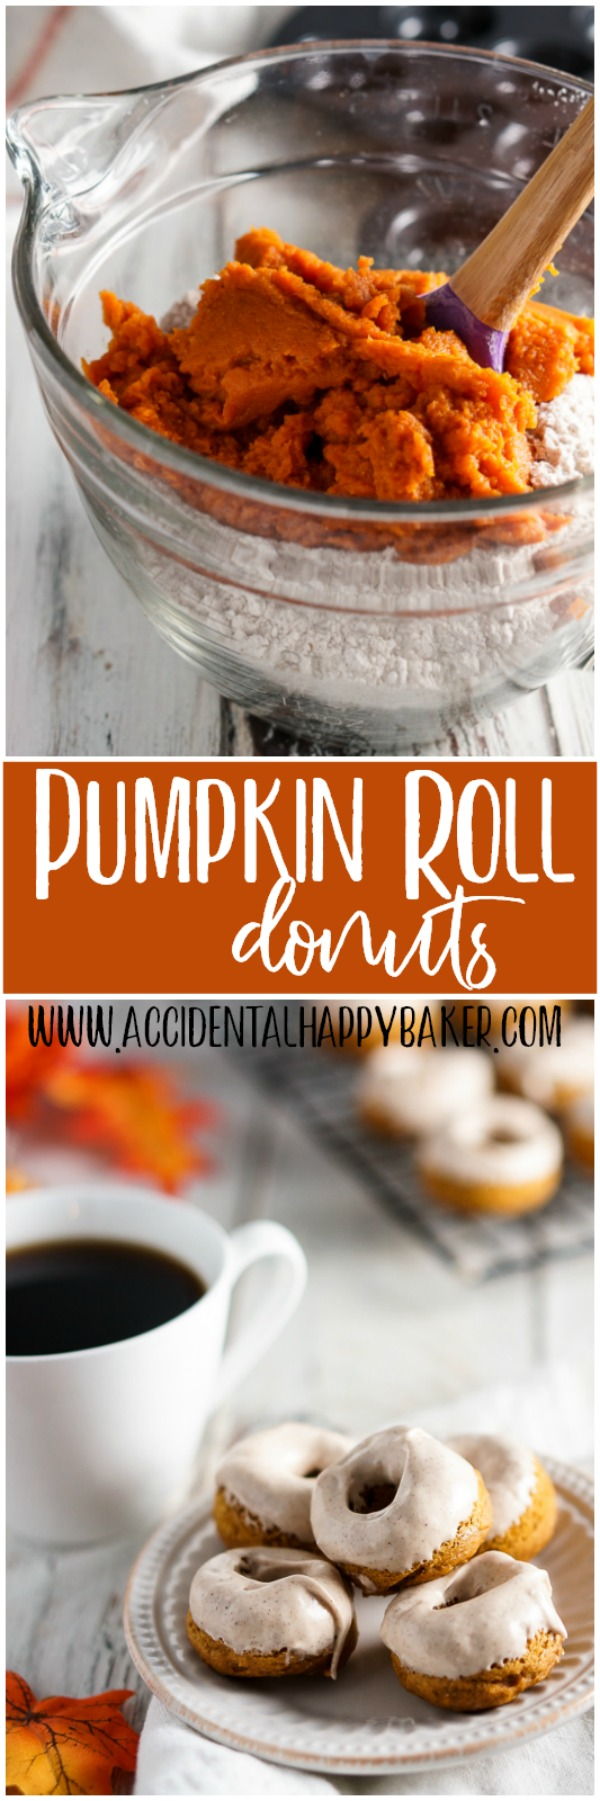 Pumpkin Roll Donuts, Bite-sized, spiced just right pumpkin donuts are topped with a cinnamon cream cheese glaze to  create perfectly poppable pumpkin roll donuts.